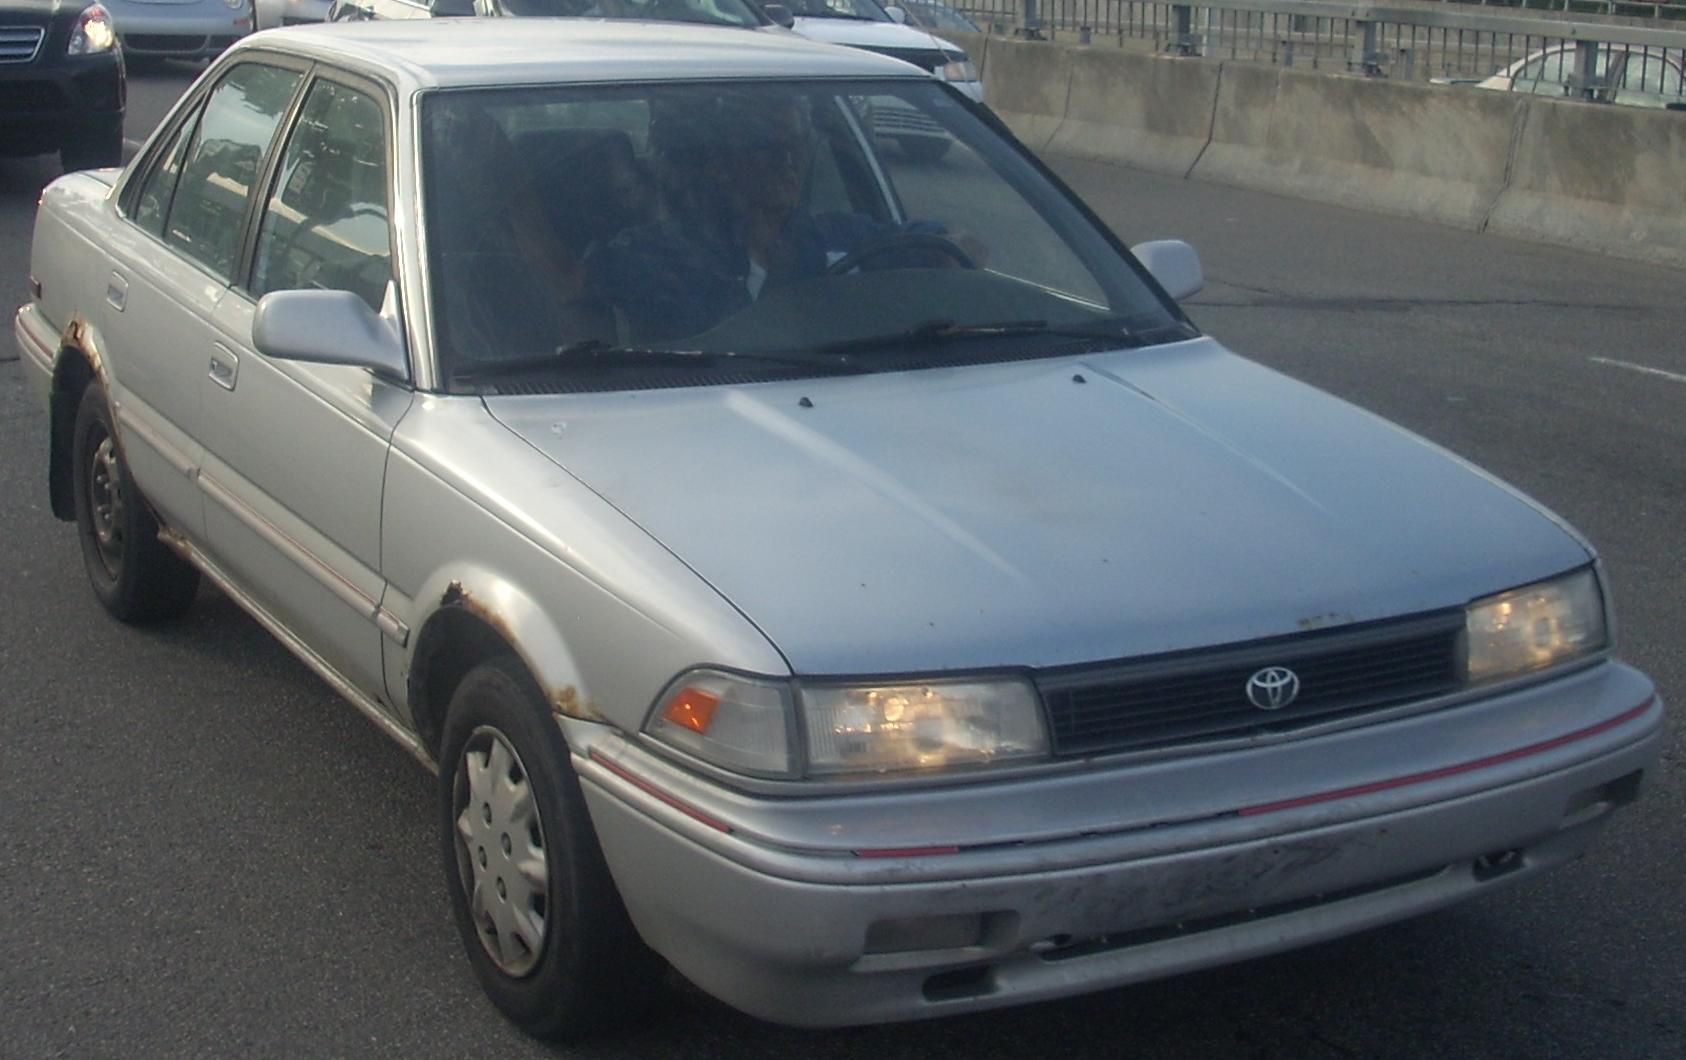 File:1991-92 Toyota Corolla Sedan.jpg - Wikimedia Commons